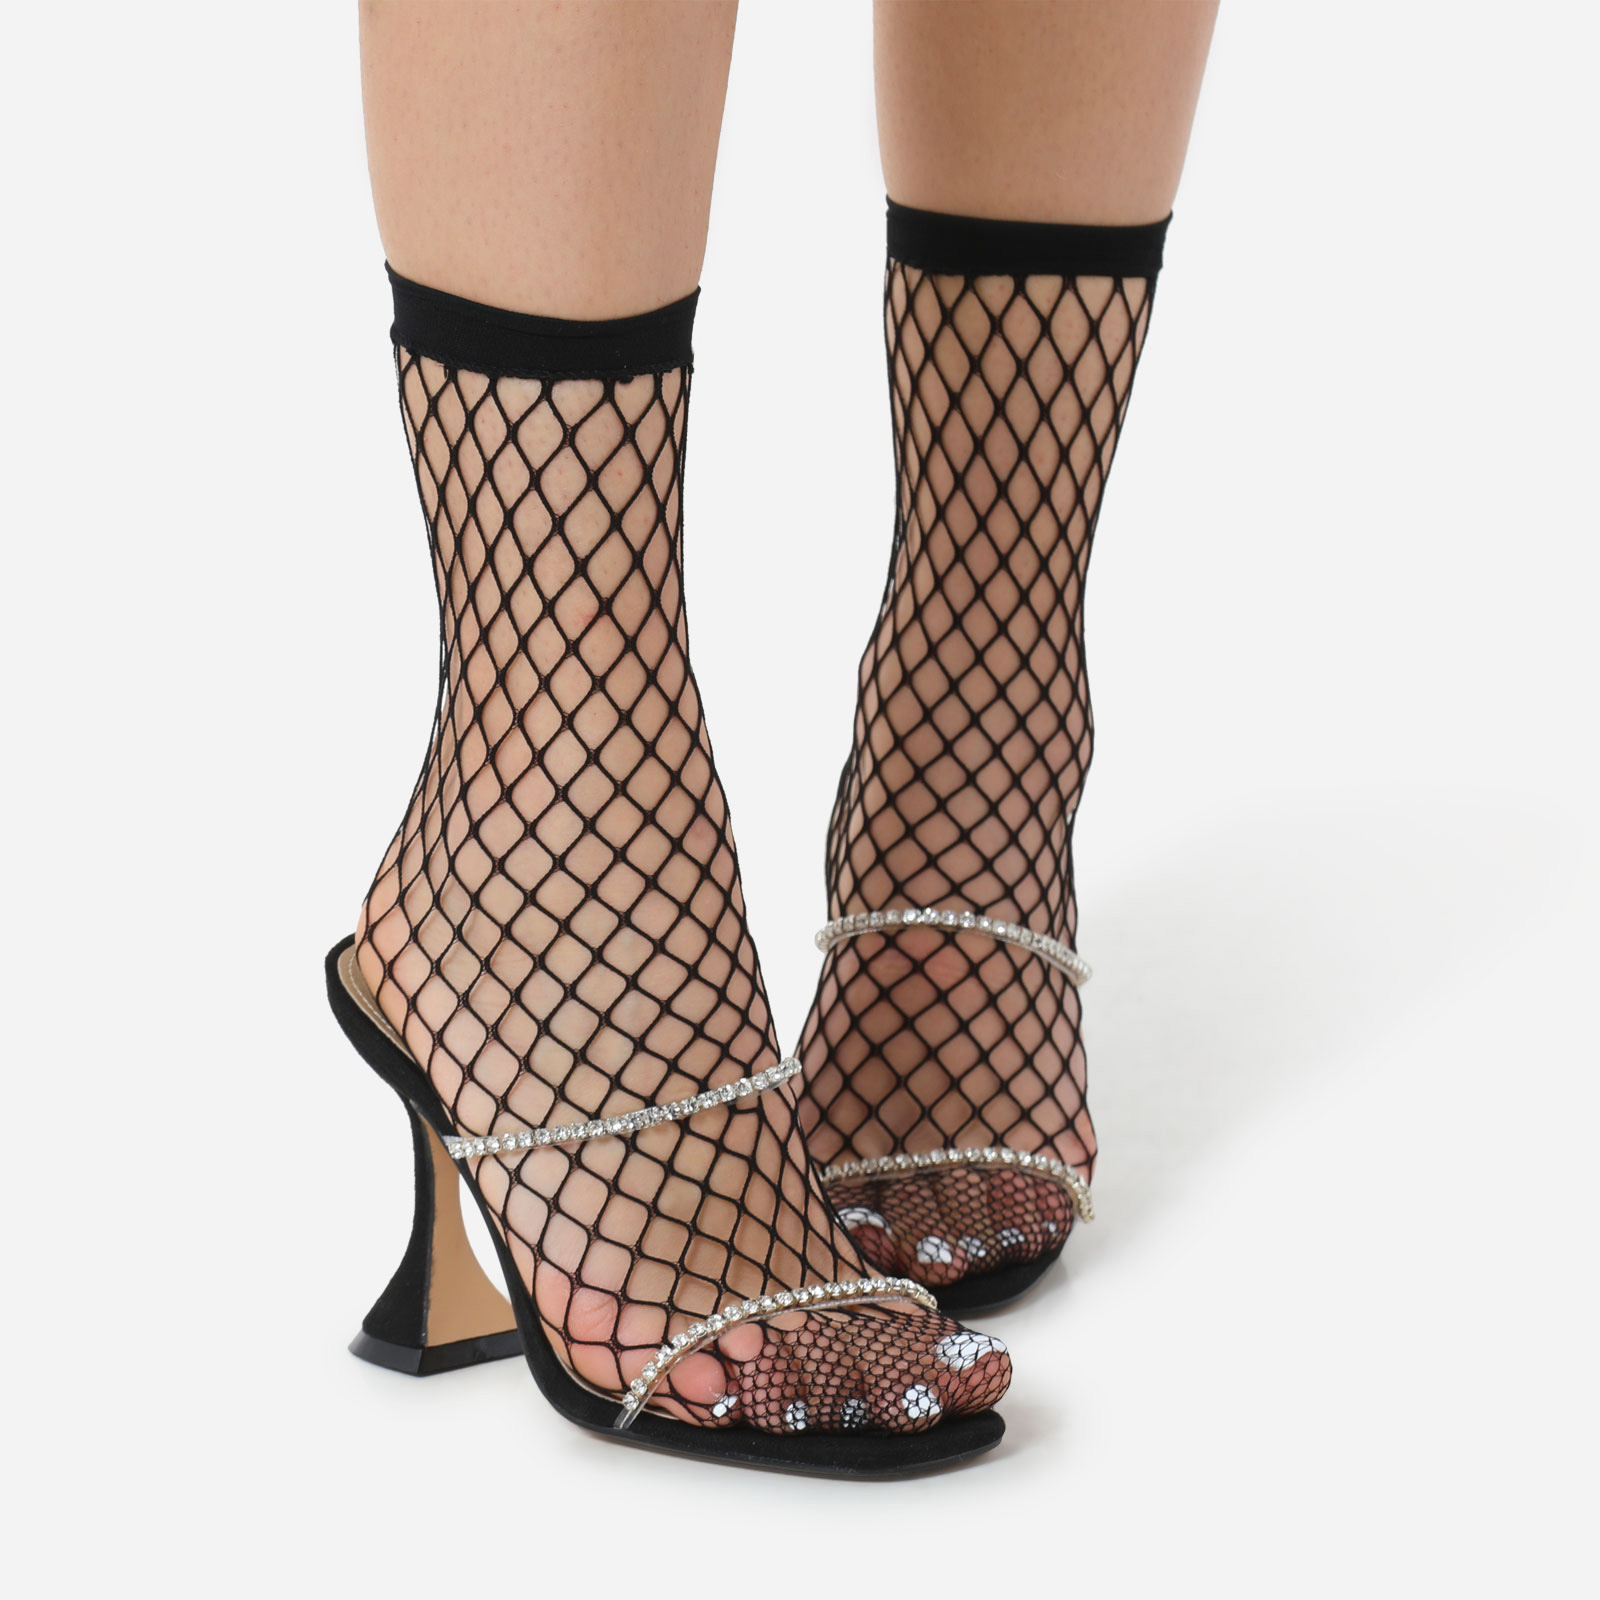 Socks In Black Fishnet